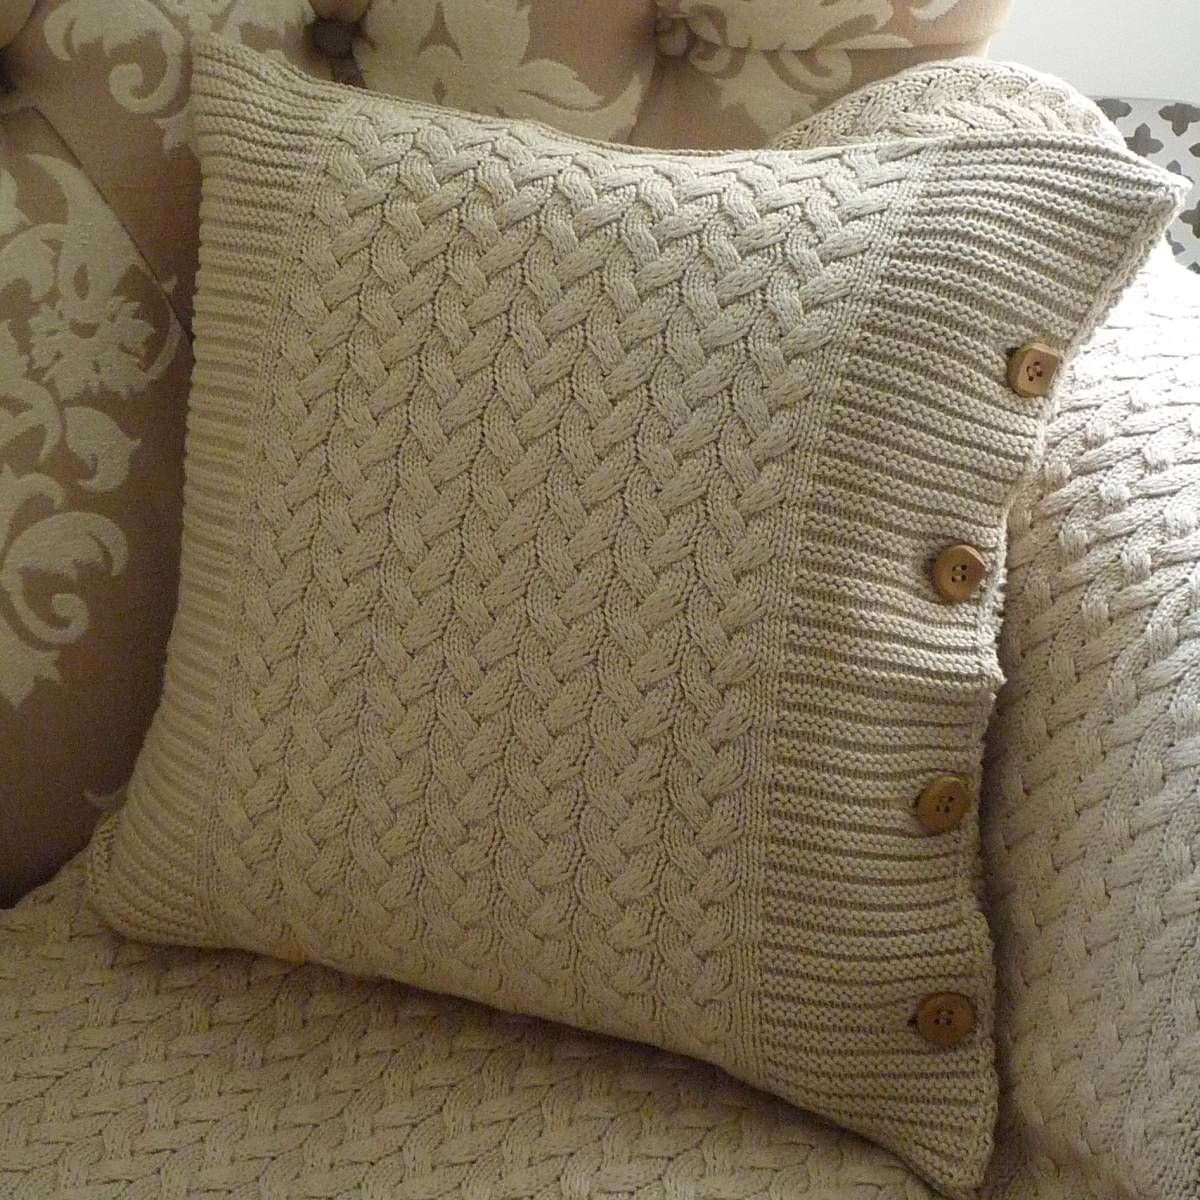 Free Knitting Patterns For Cushions In Cable Knit : Brompton Beige Cable-Knit Cushion Knitting Pinterest Cable, Knit croche...